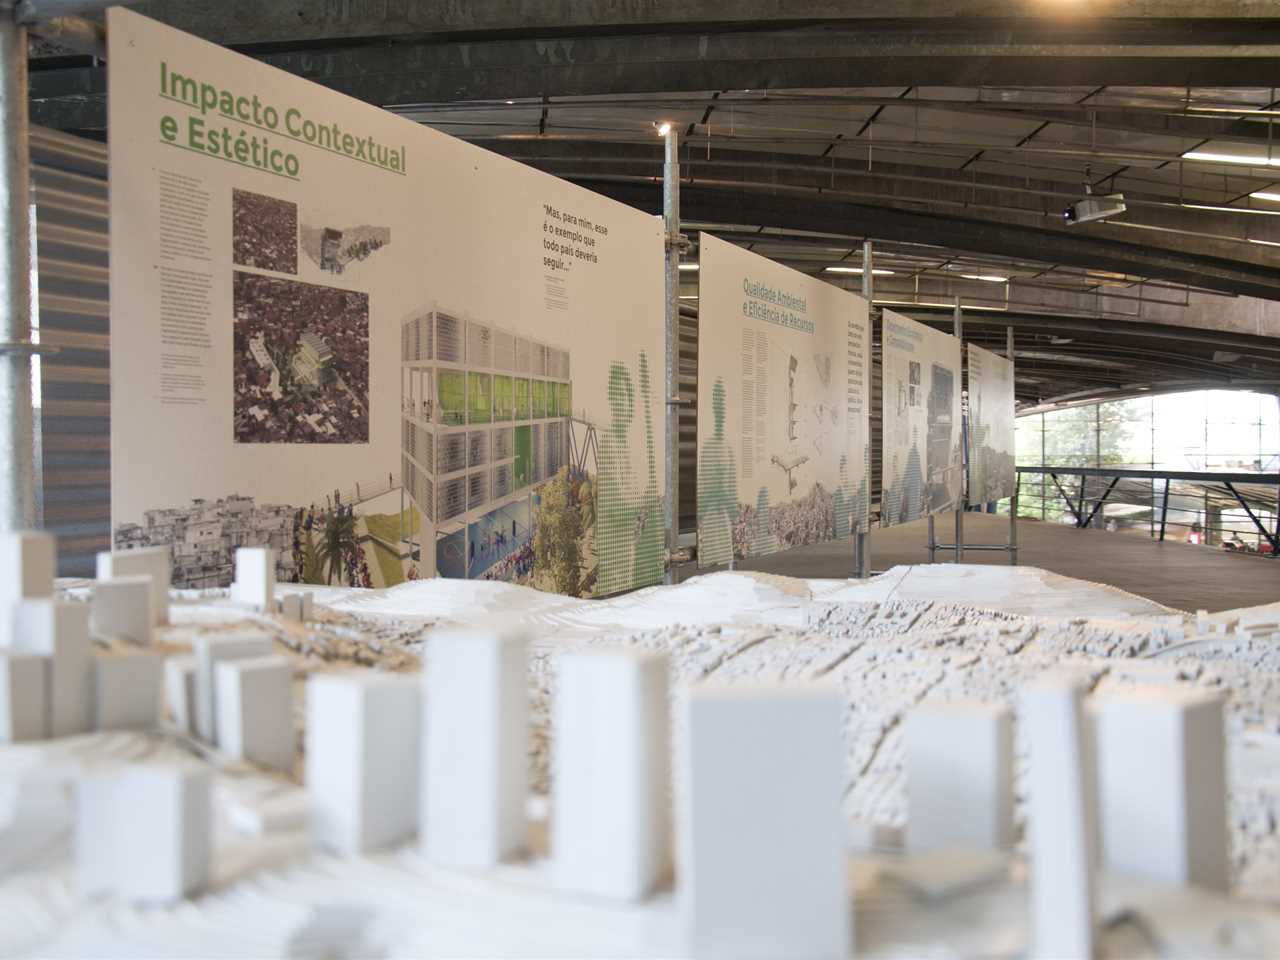 Project update May 2014 – Urban remediation and civic infrastructure hub, São Paulo, Brazil